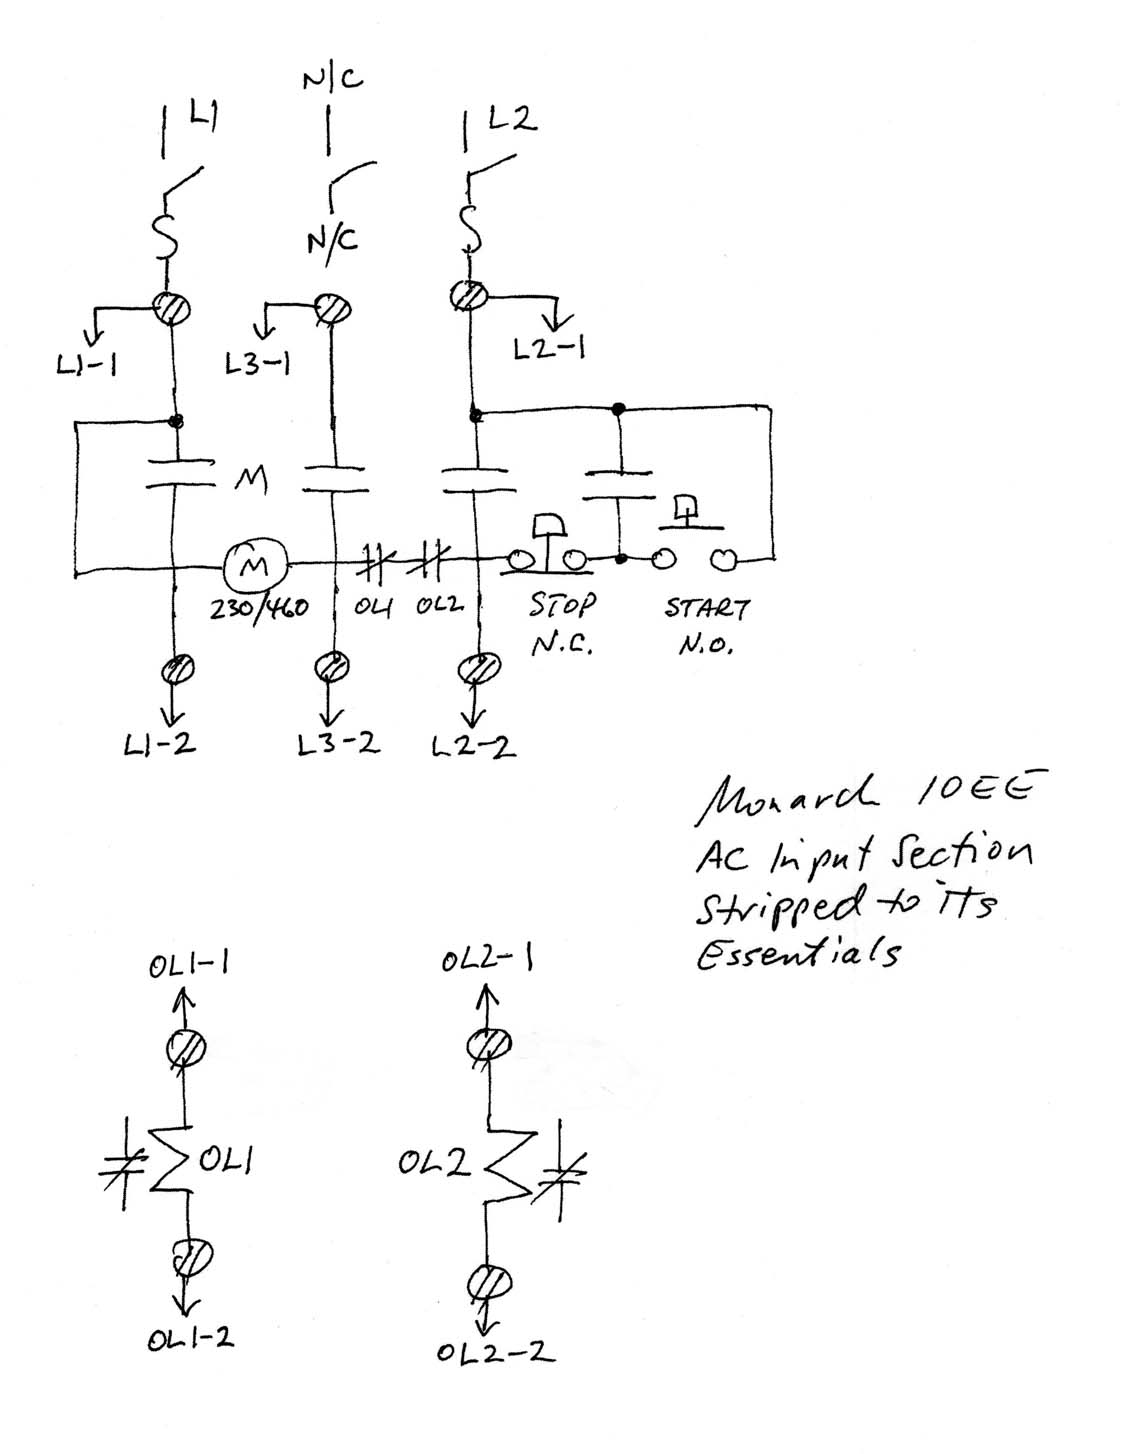 D Single Phase Power Motor Generator Ees Sheet on Motor Wiring Diagram 208 3 Phase